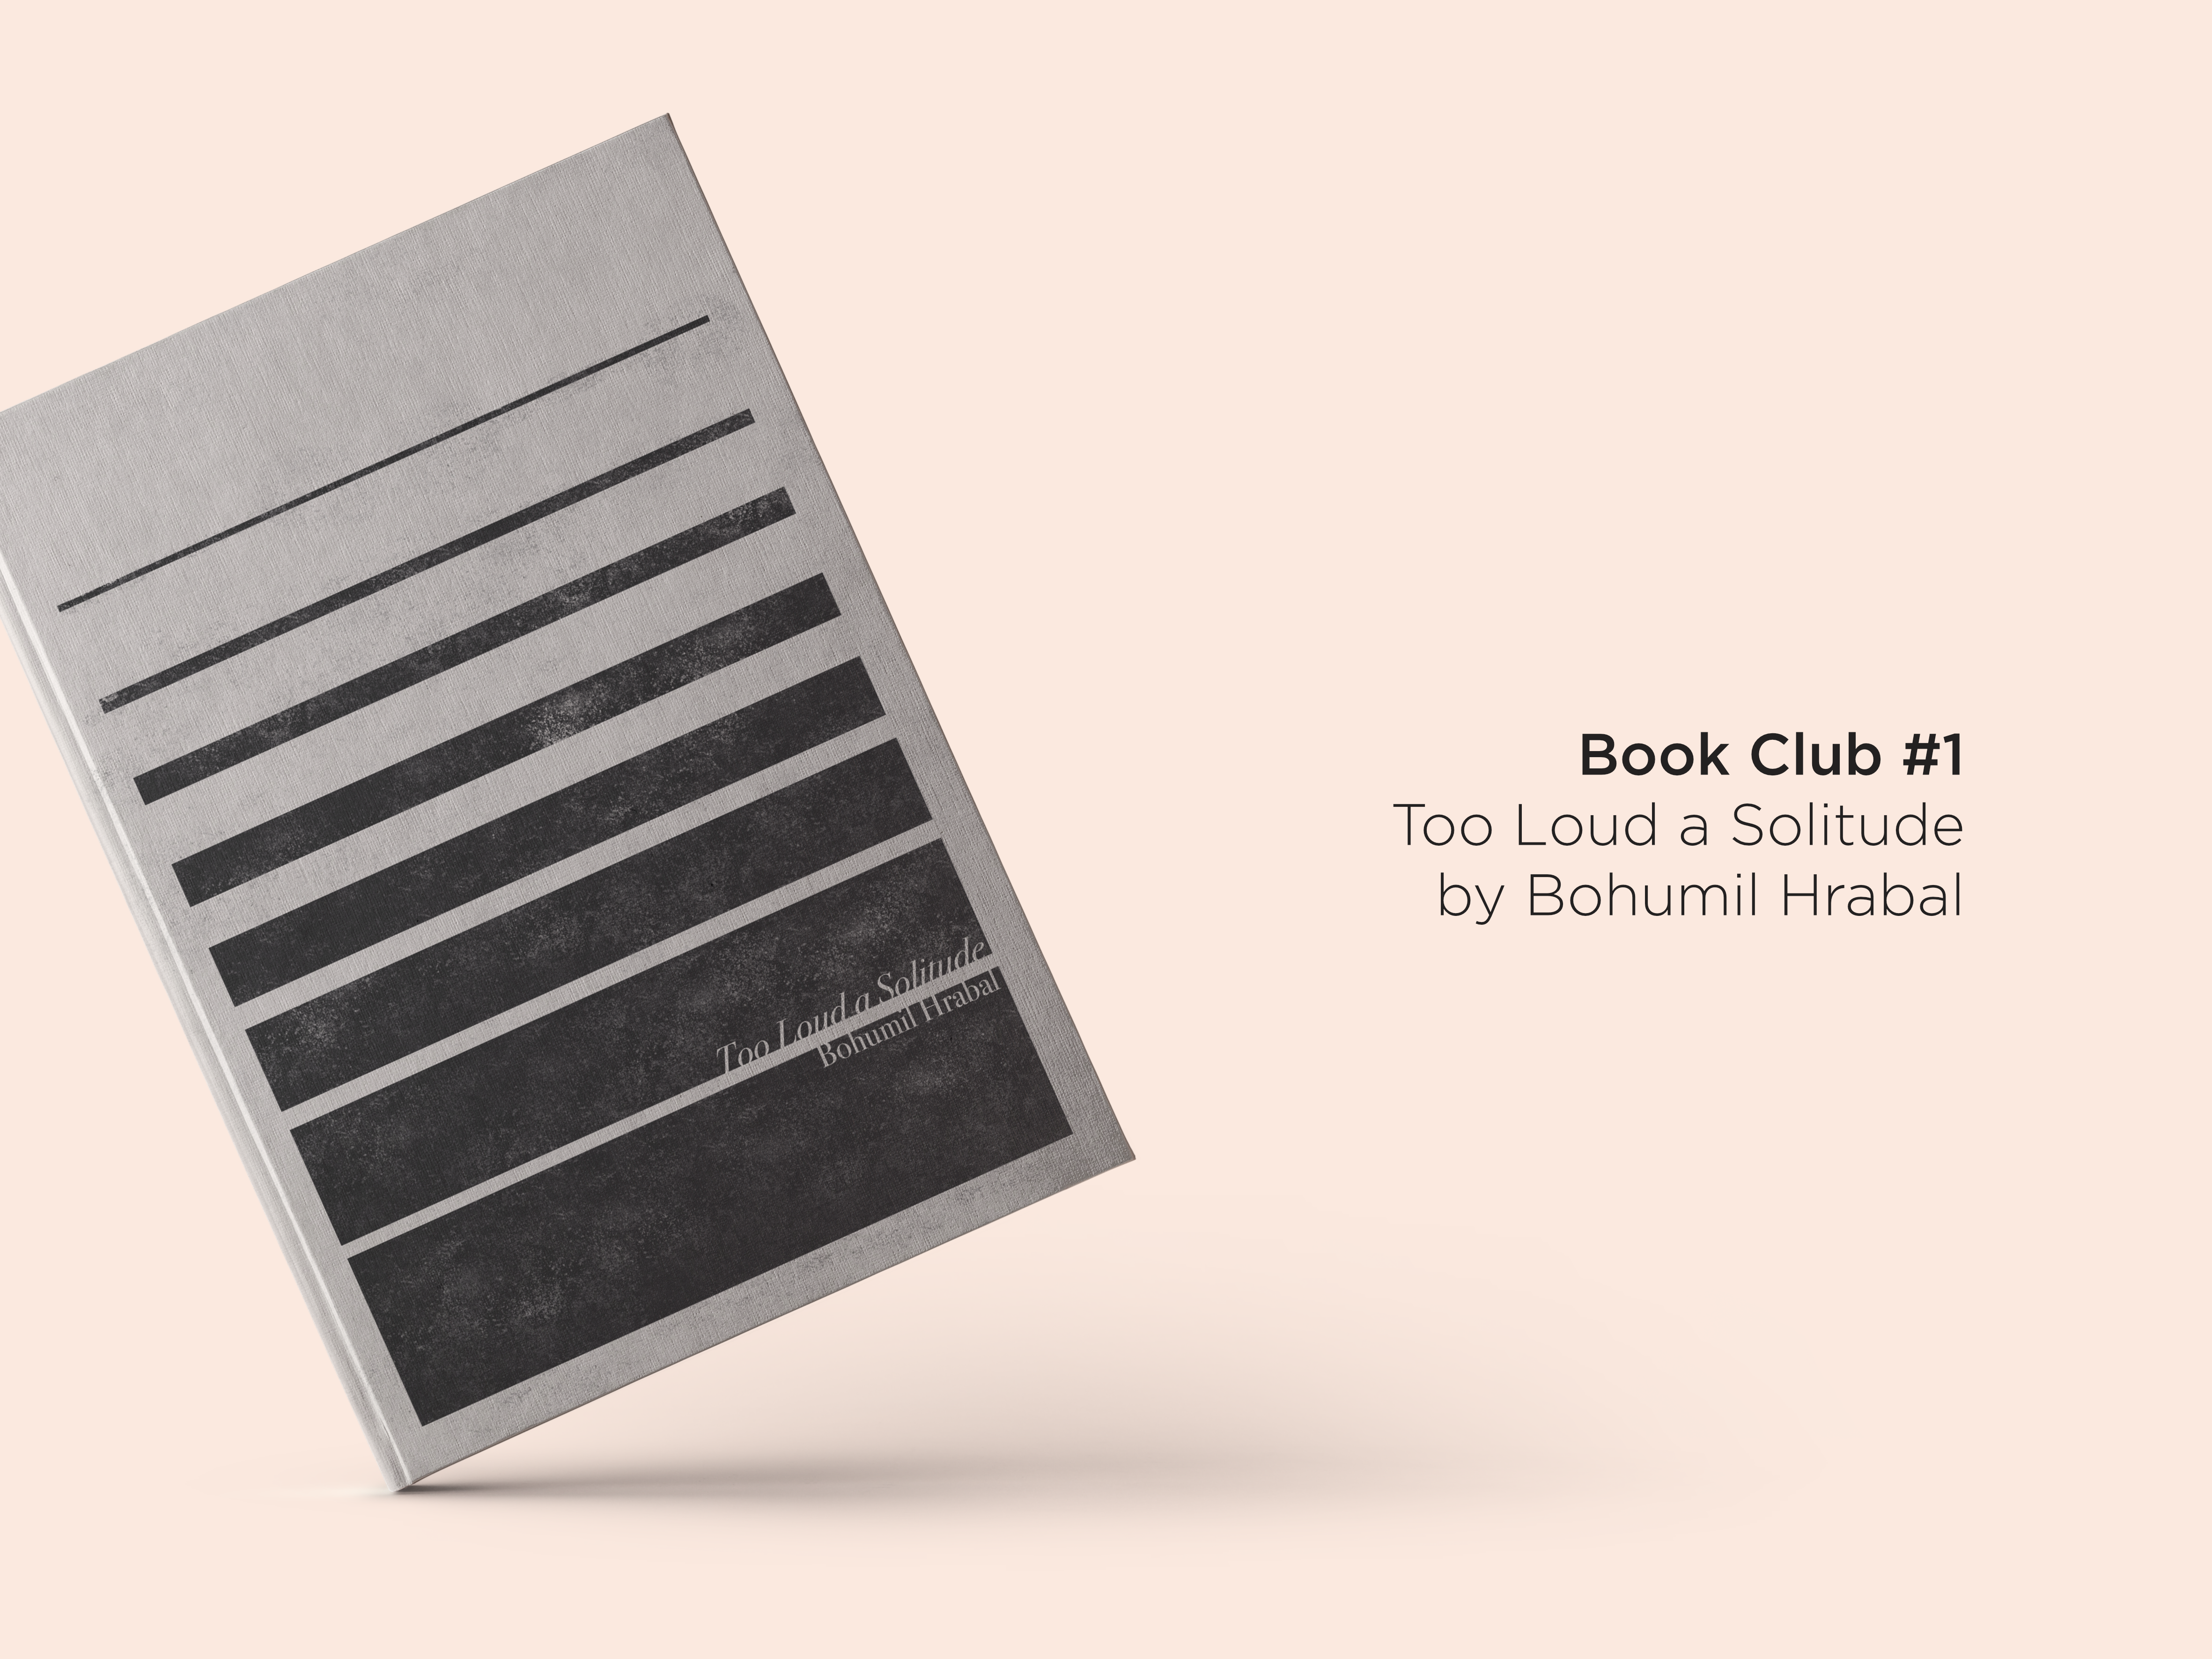 Too Loud a Solitude by Bohumil Hrabal alternative book cover design workovereasy book club